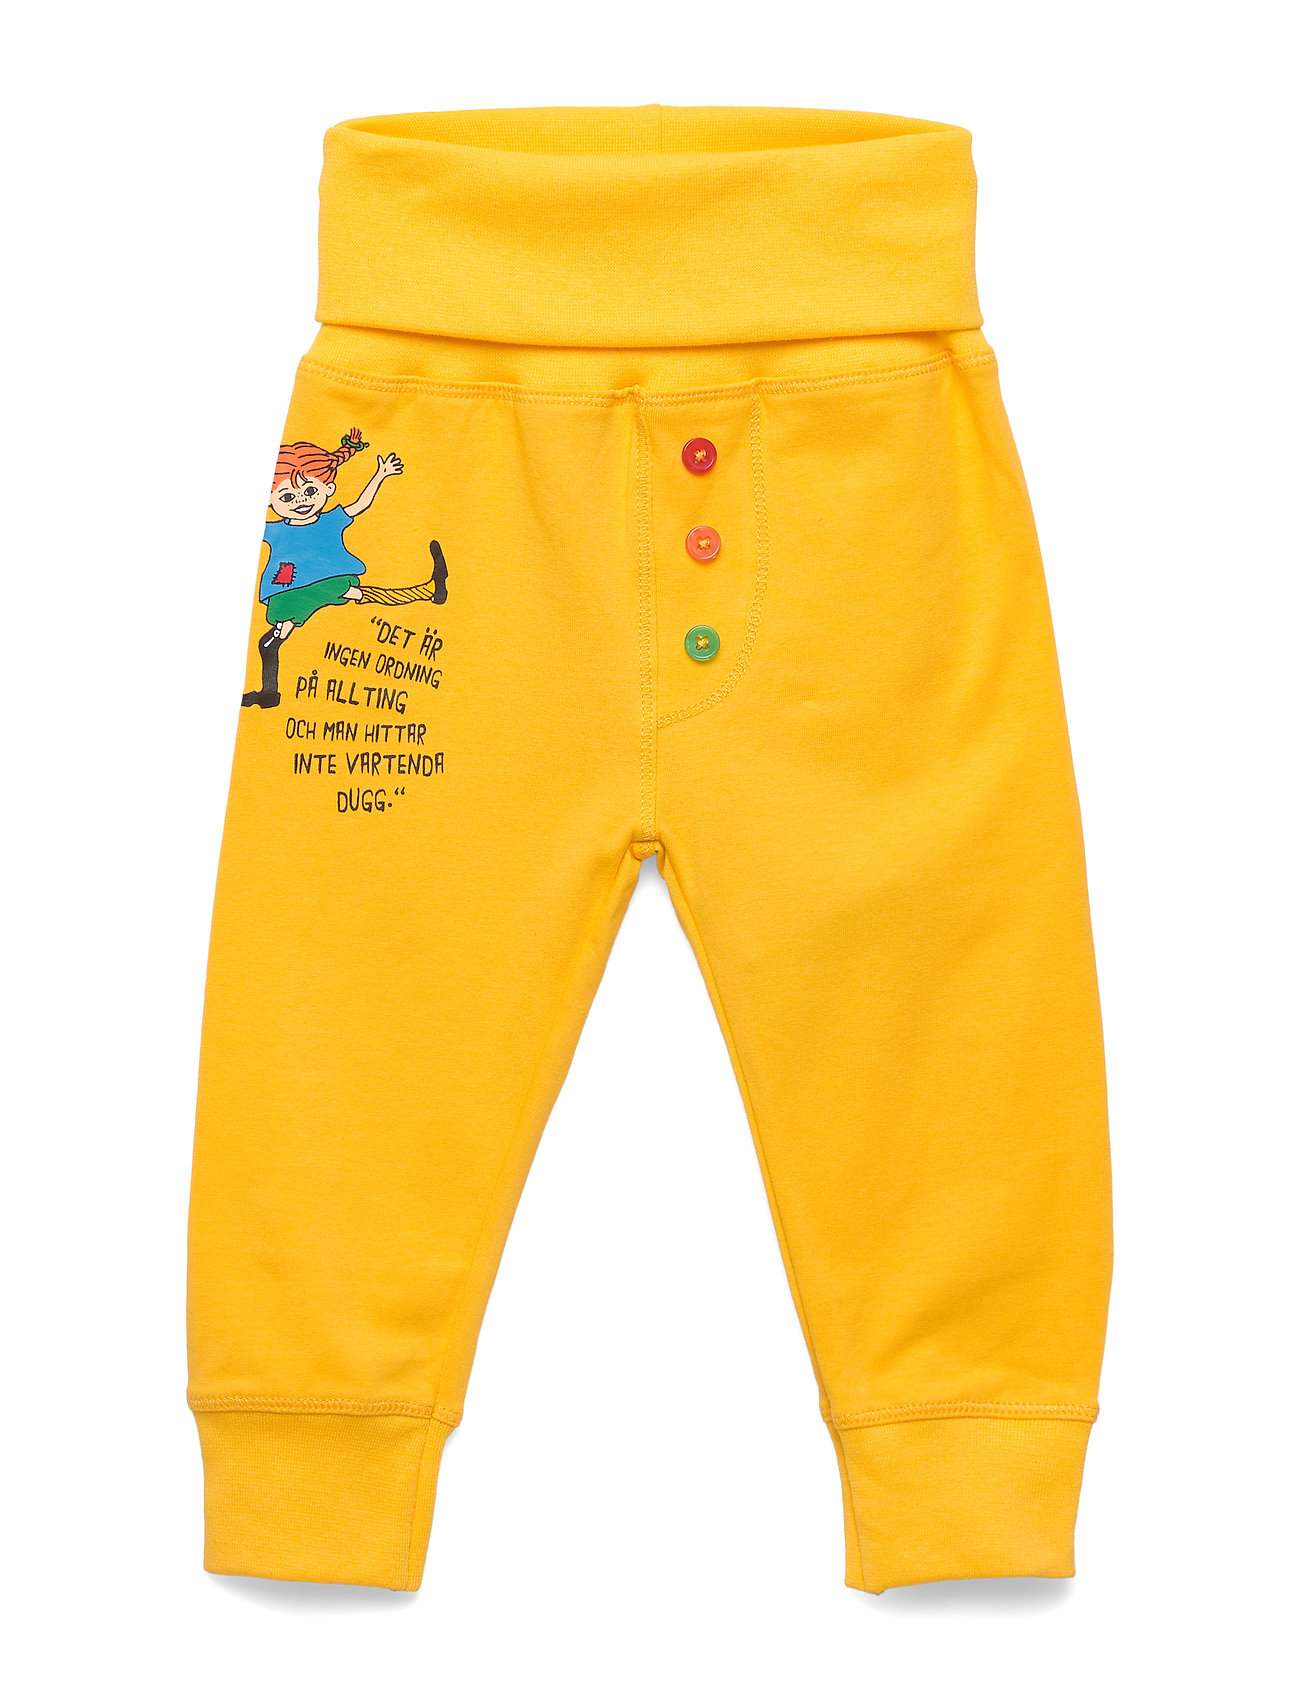 Pippi Långstrump QUOTE PANTS - YELLOW